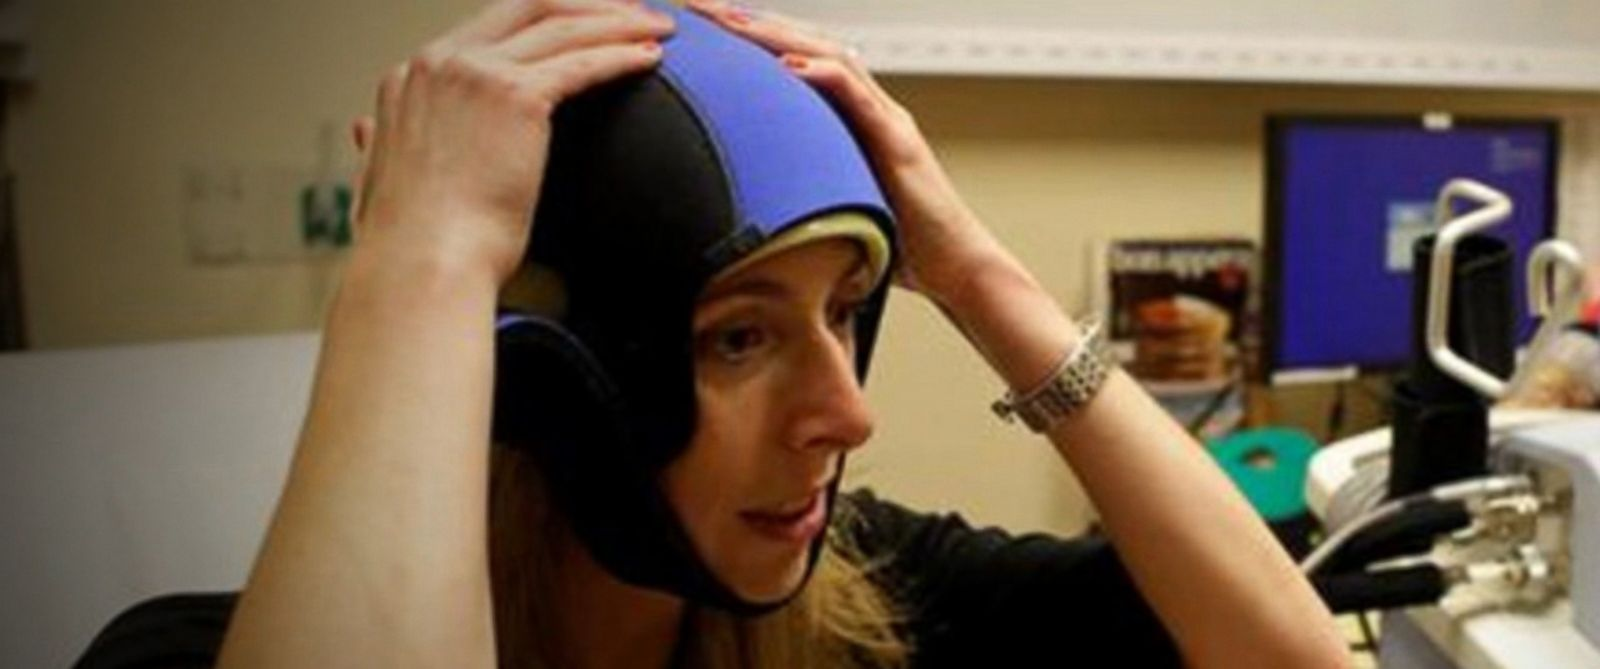 FDA Approves 'Cold Cap' That Reduces Hair Loss During Cancer Treatment